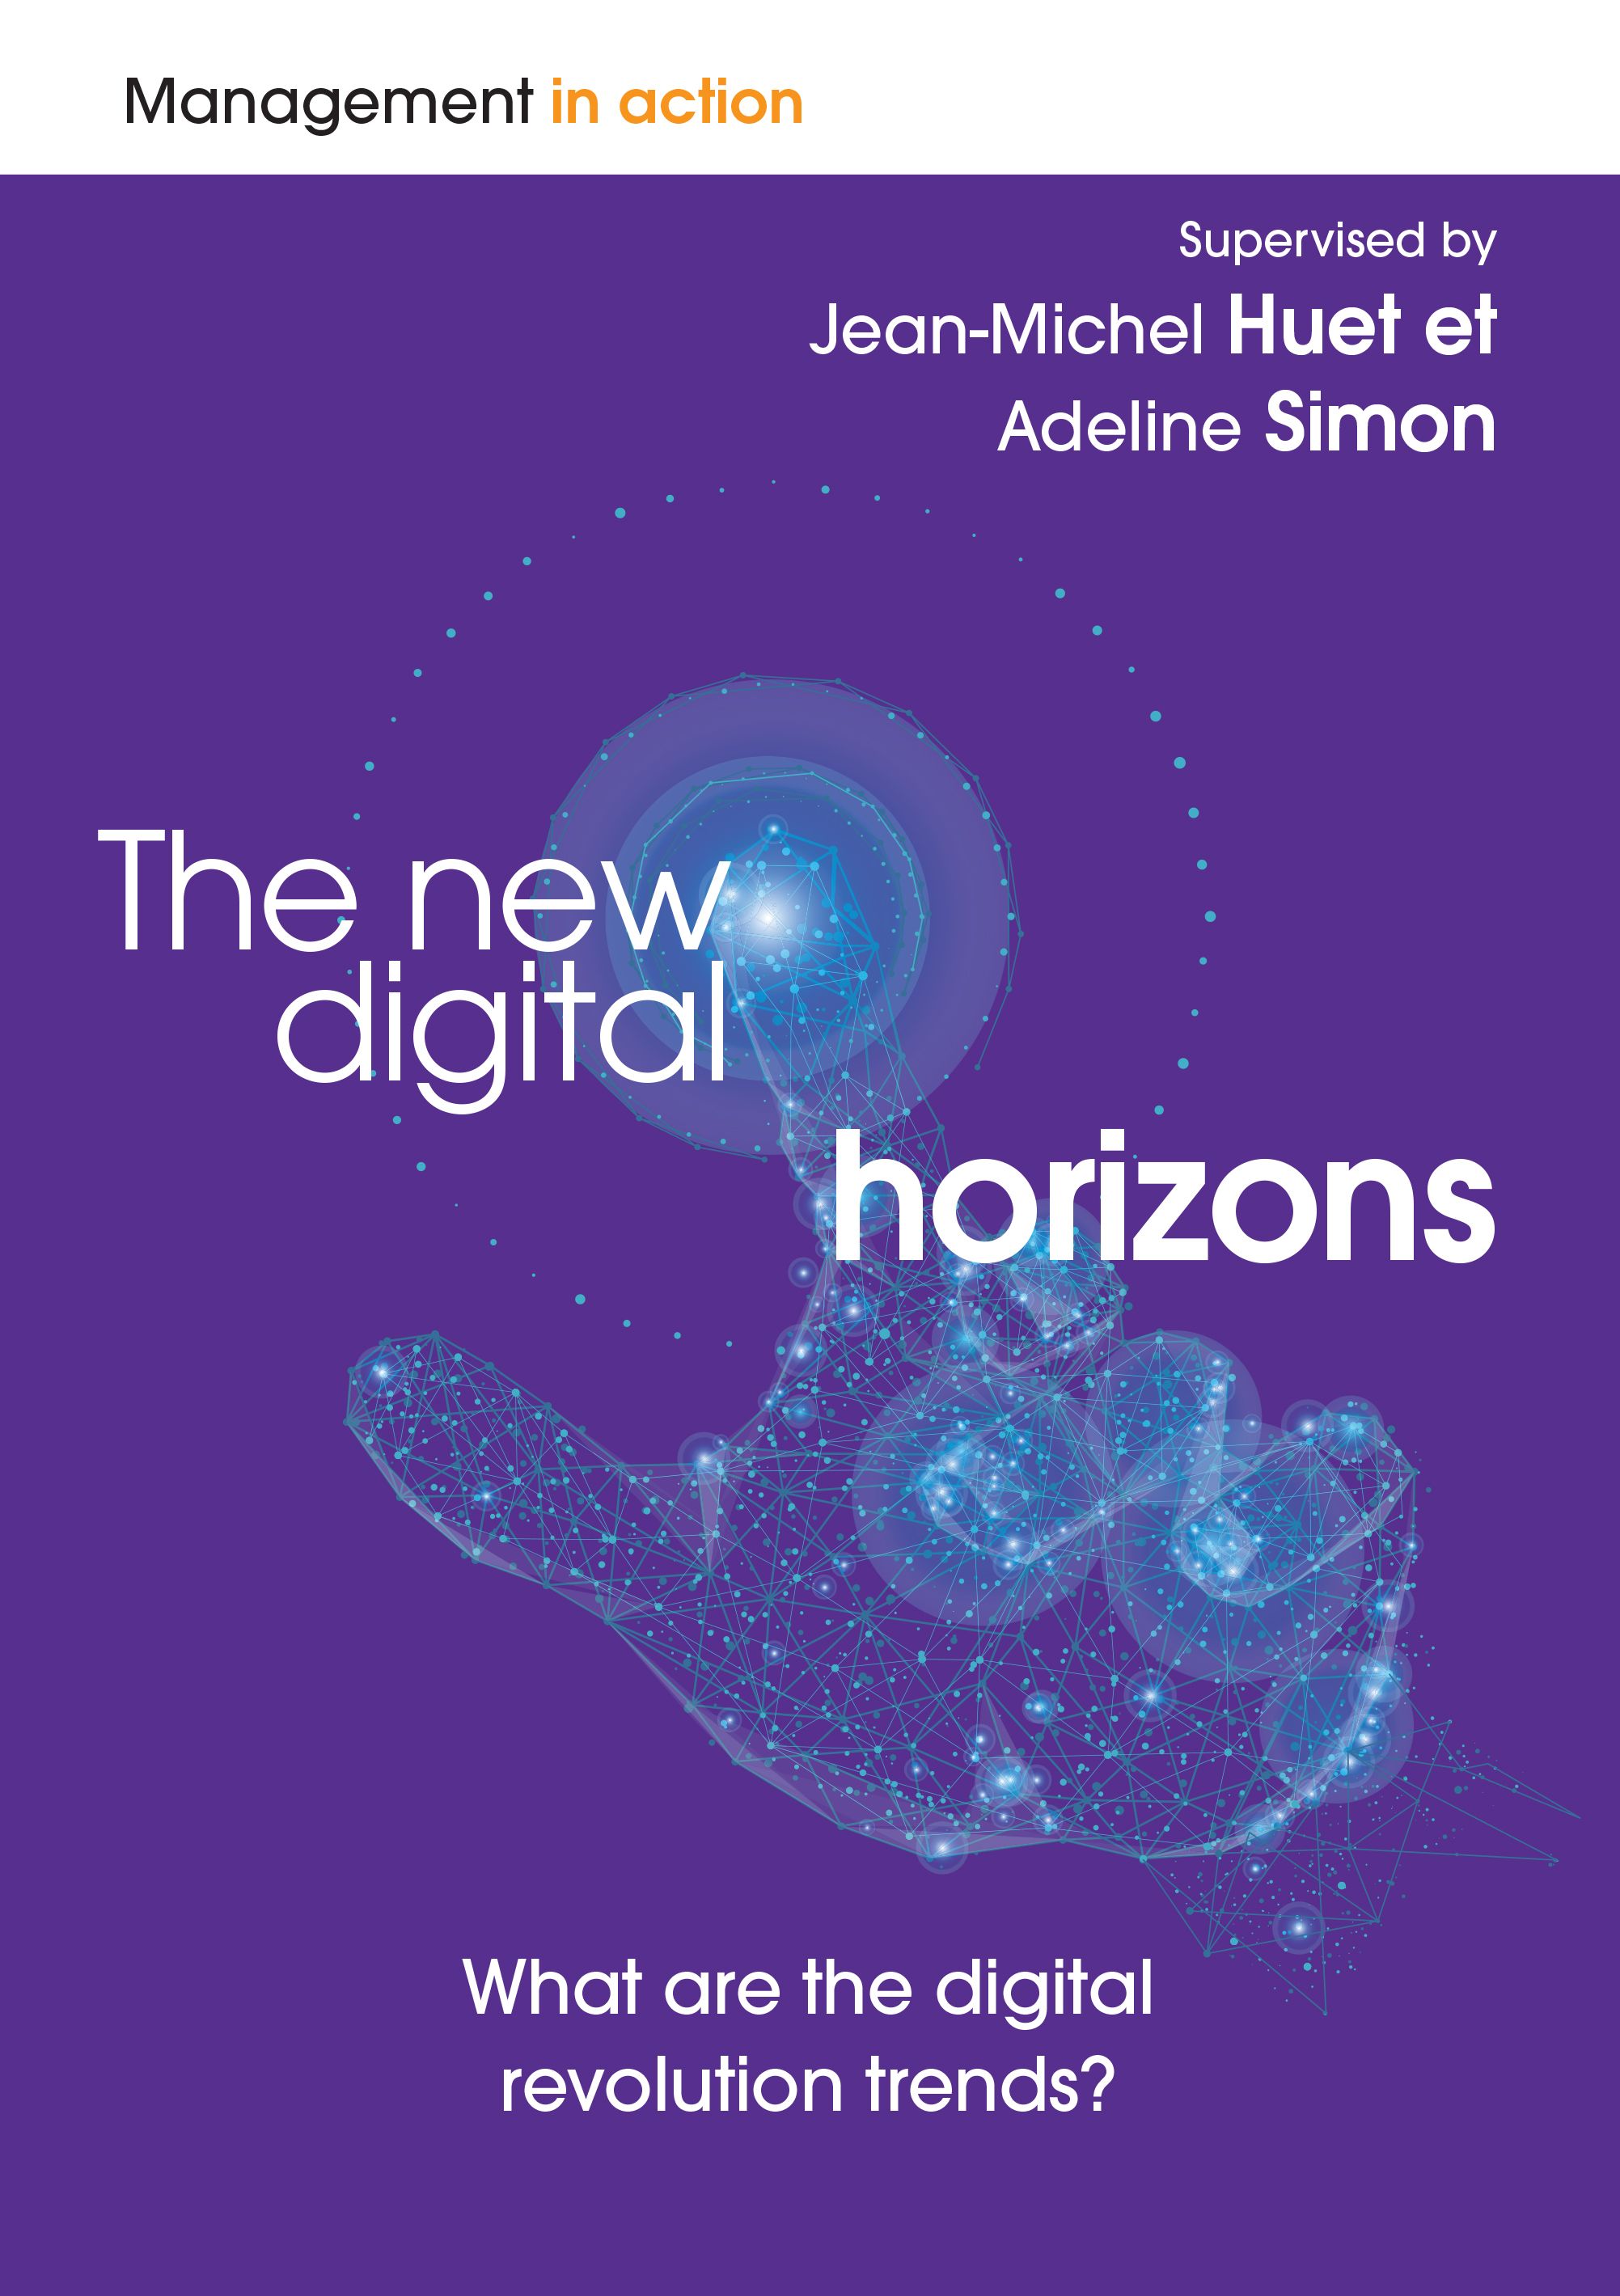 The new digital horizons De Jean-Michel Huet et Adeline Simon - Pearson